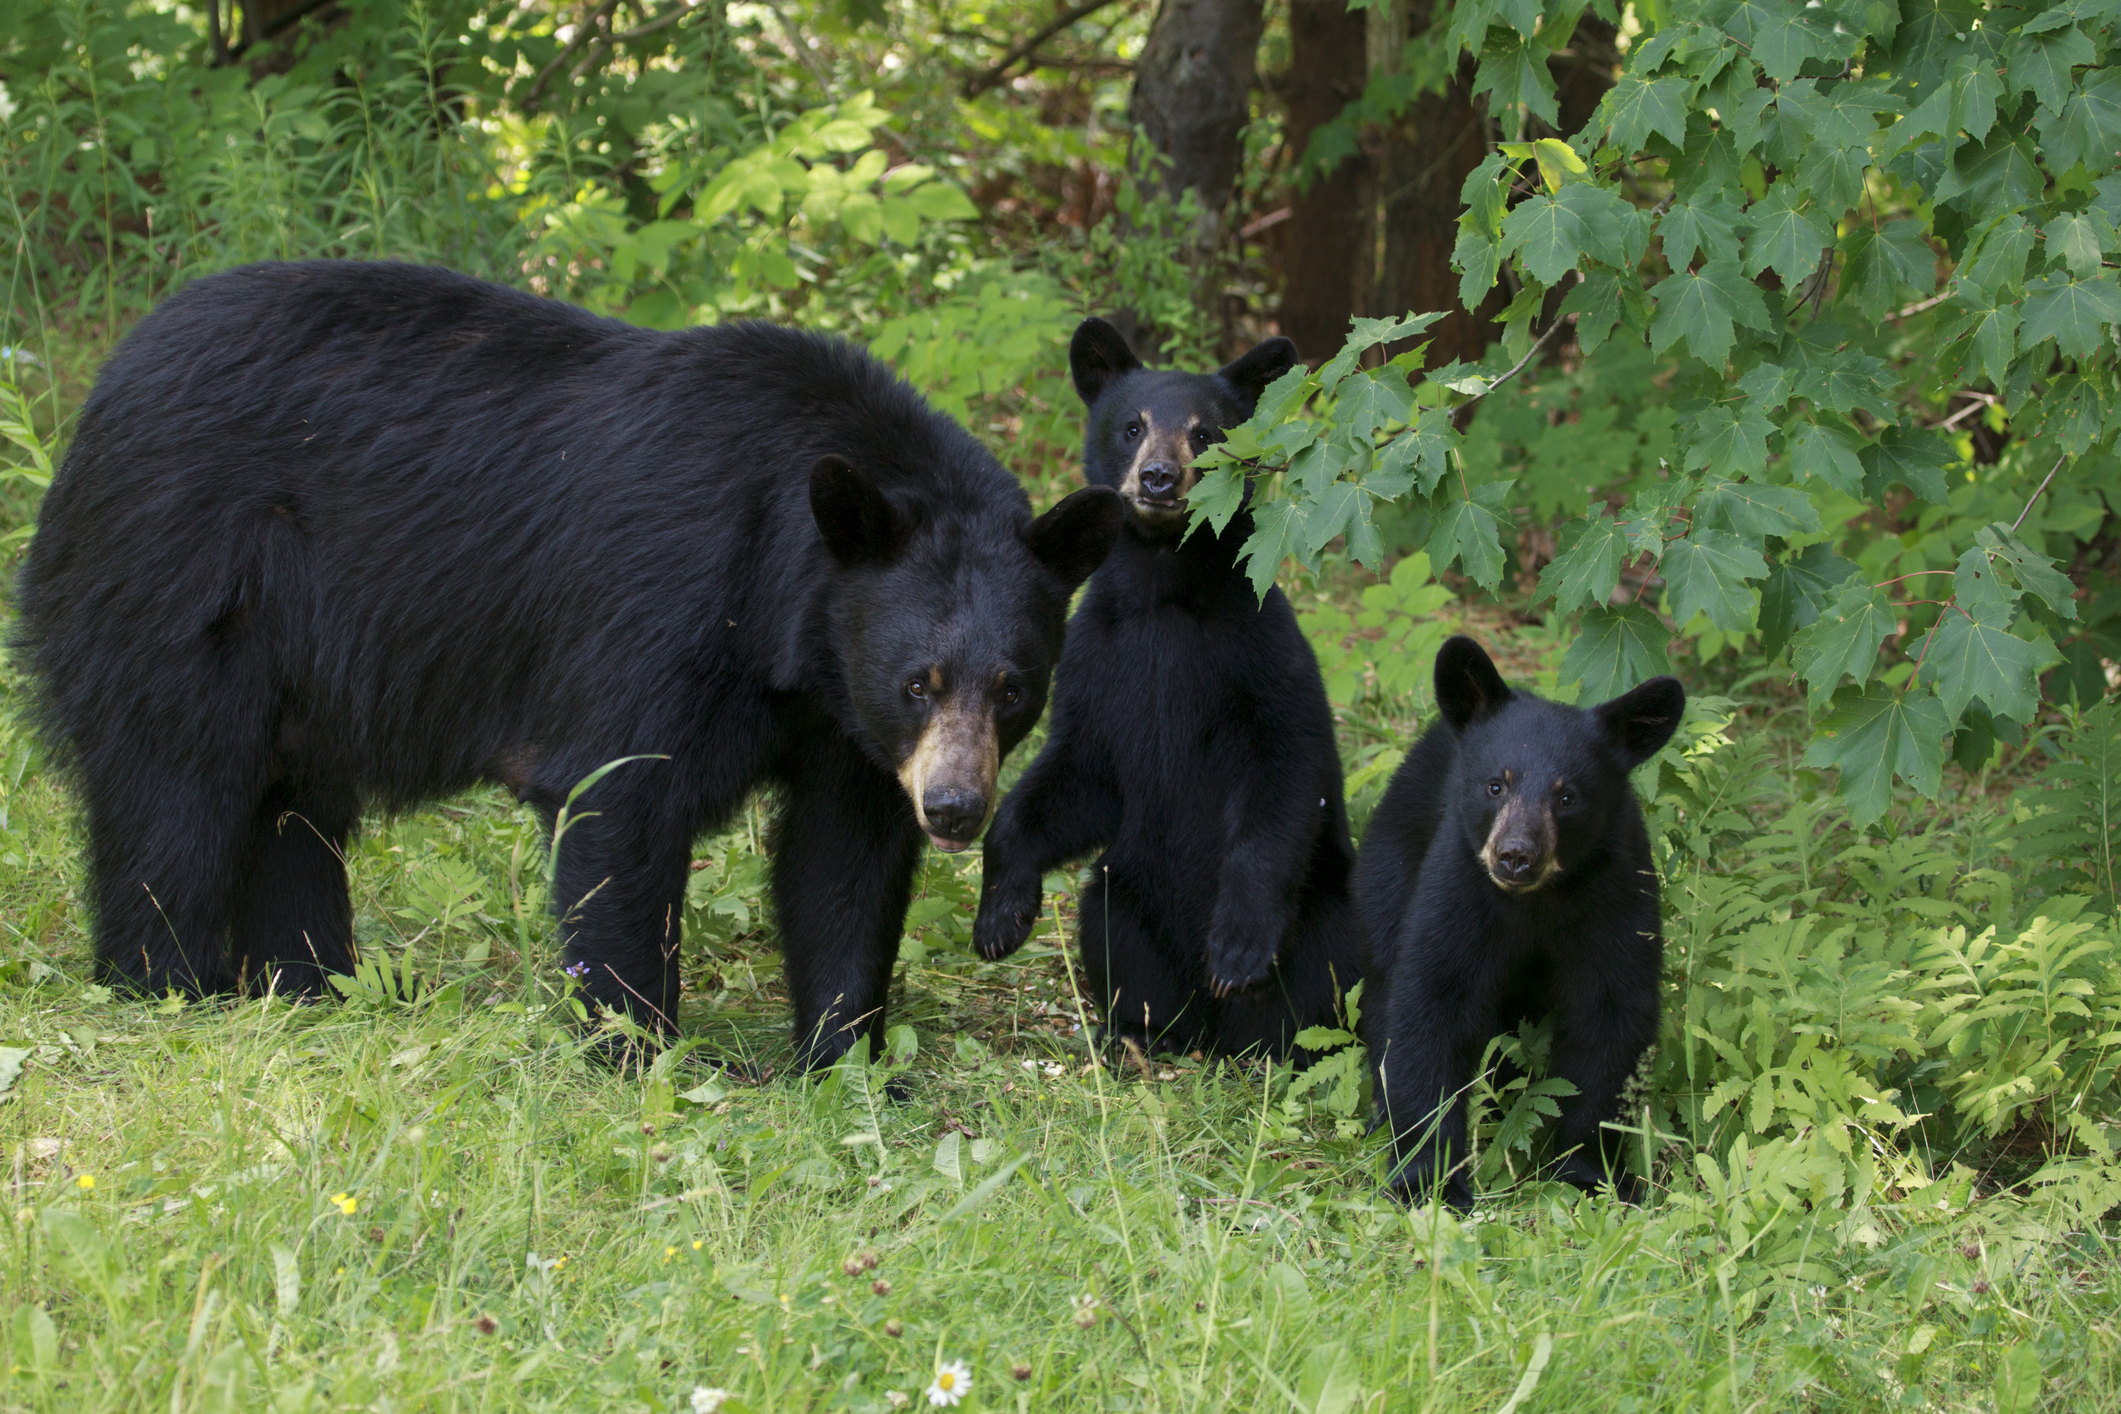 There are at least 600,000 black bears in North America.